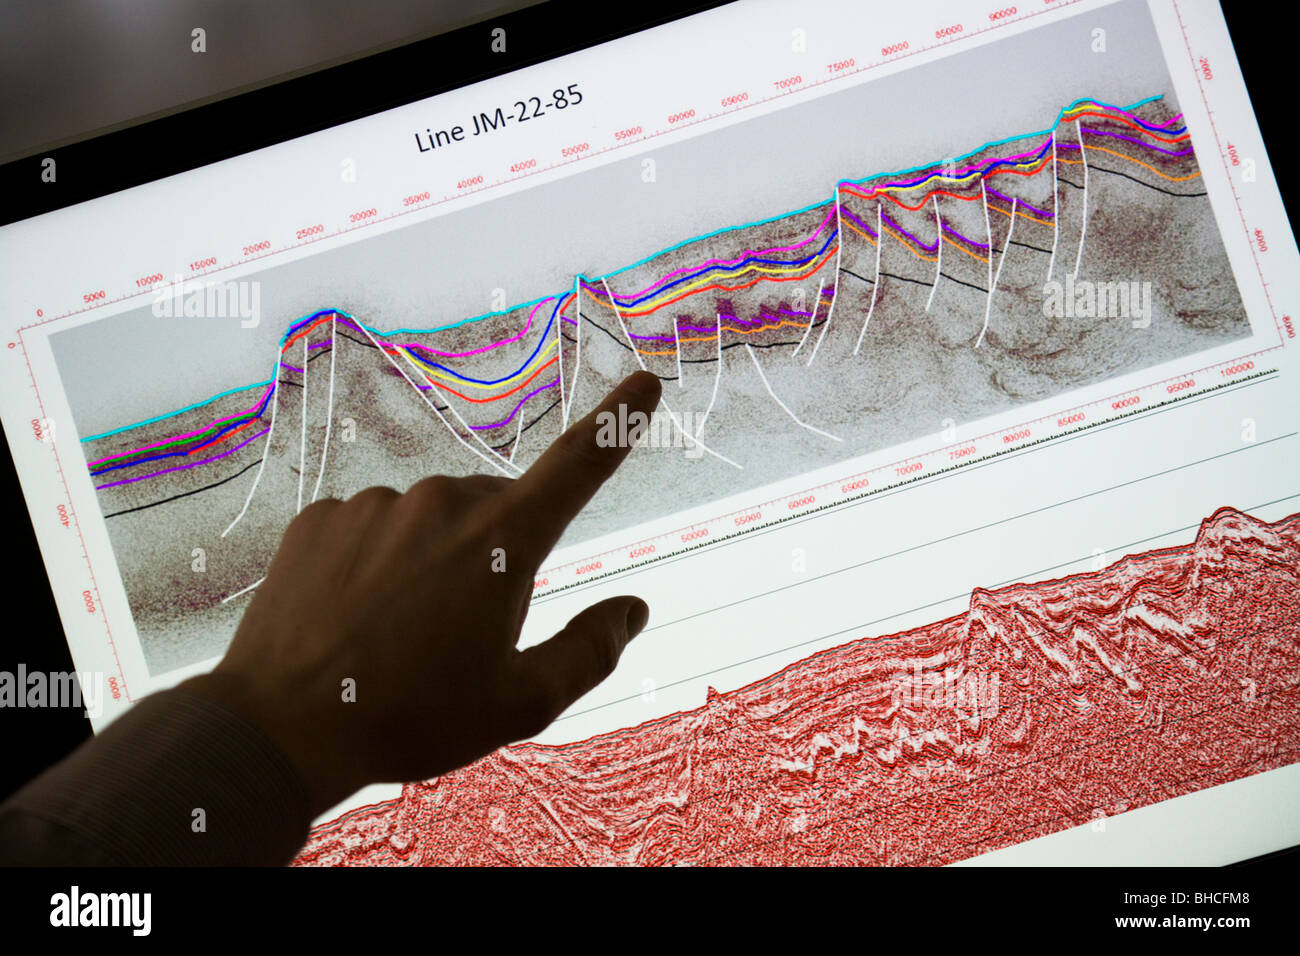 Thorarinn S. Arnarson, Oceanographer and Hydrocarbon Licensing Manager, shows a map with seismic reflection lines... - Stock Image